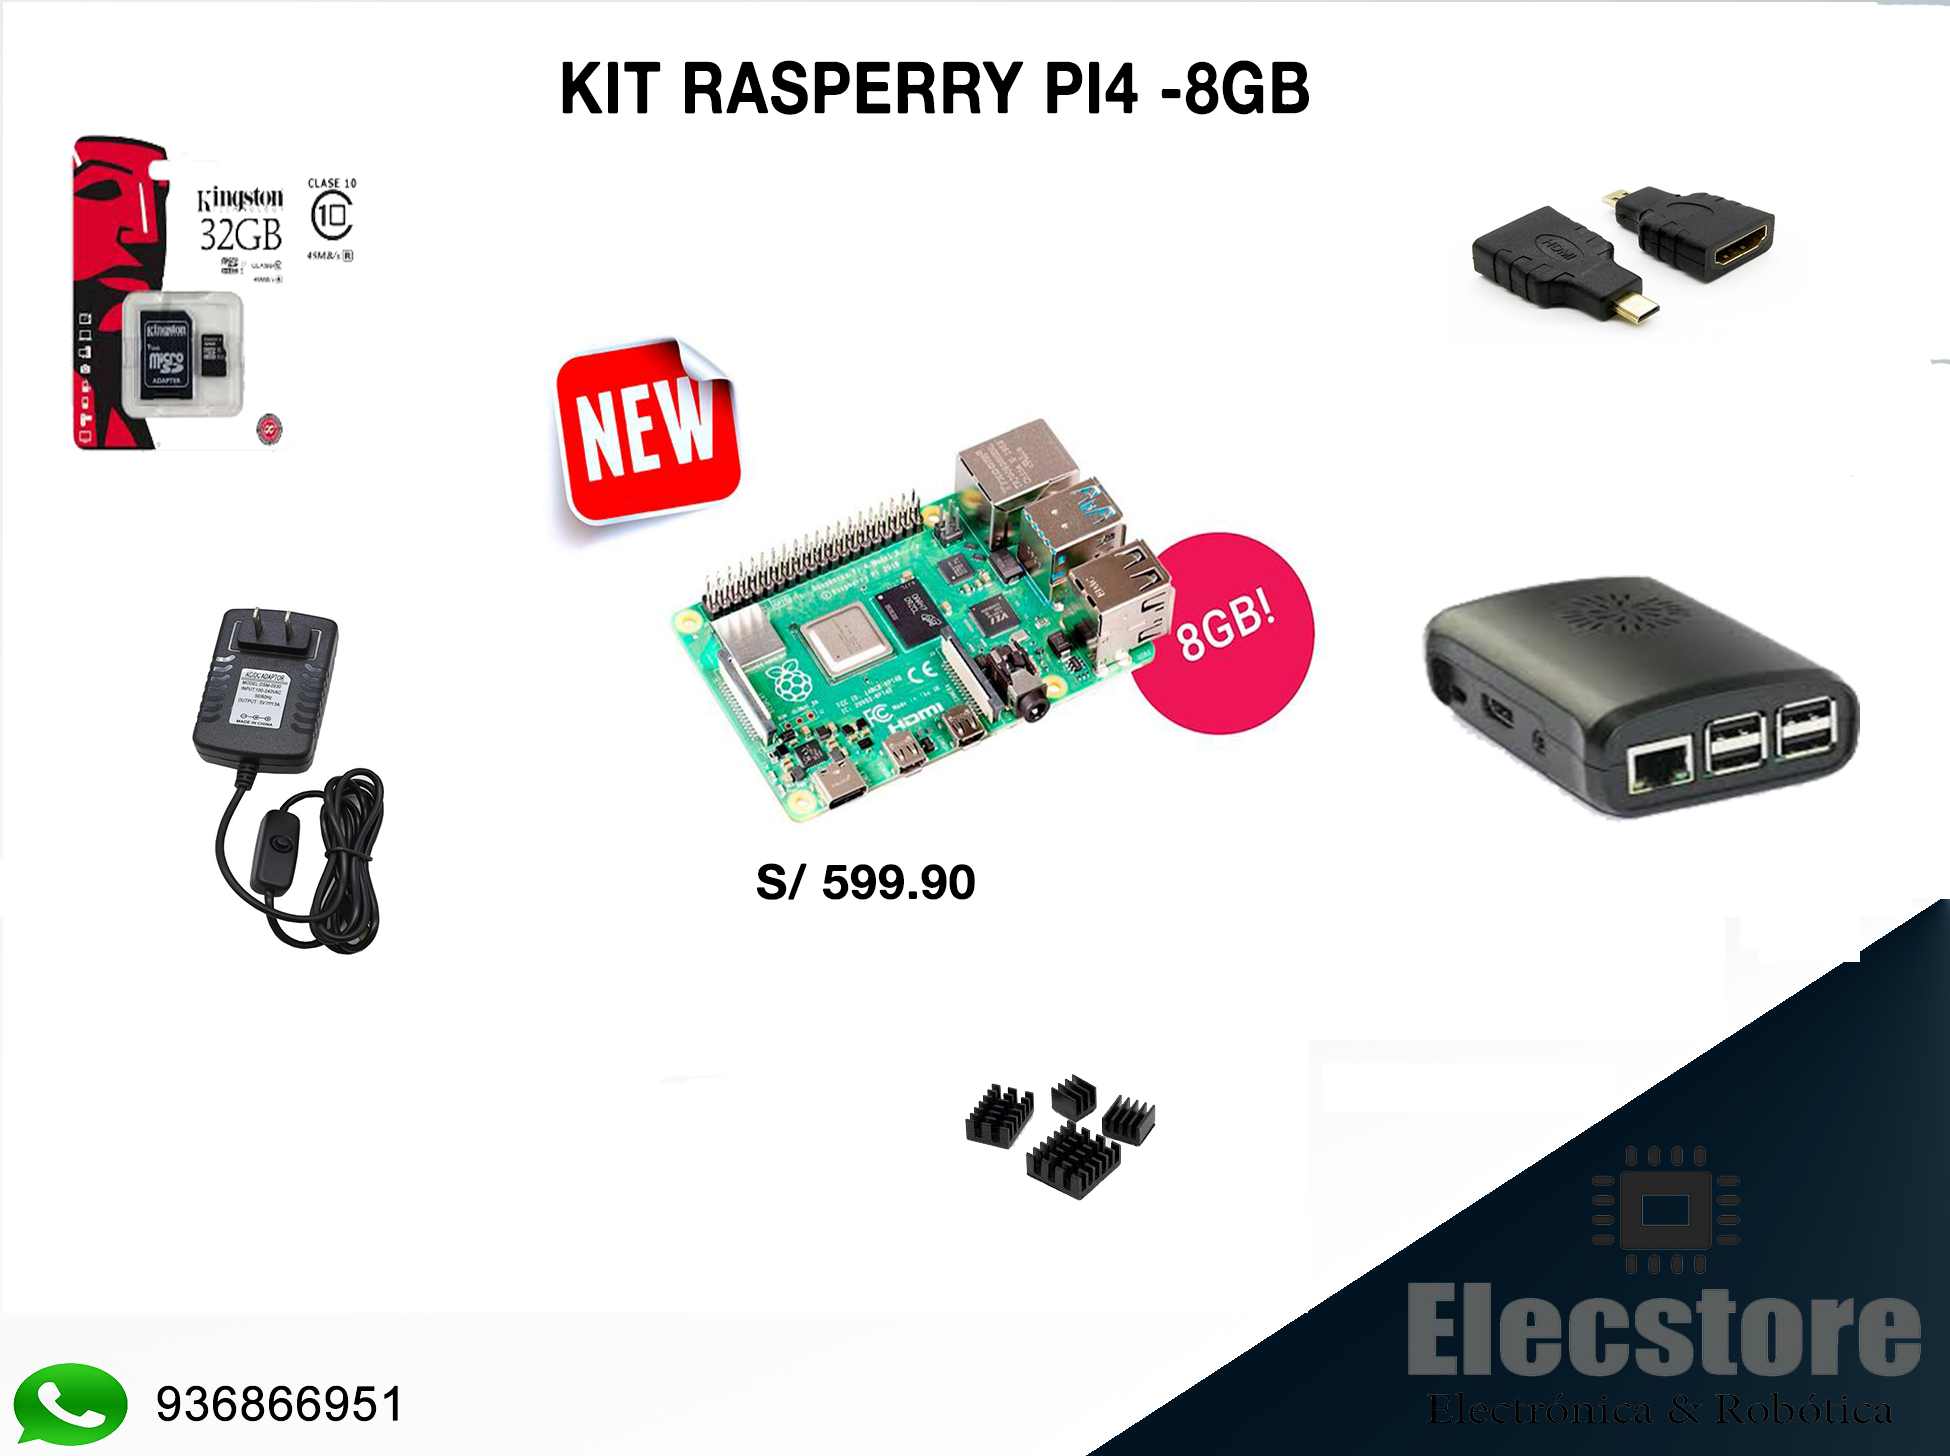 KIT RASPBERRY PI4 DE 8GB